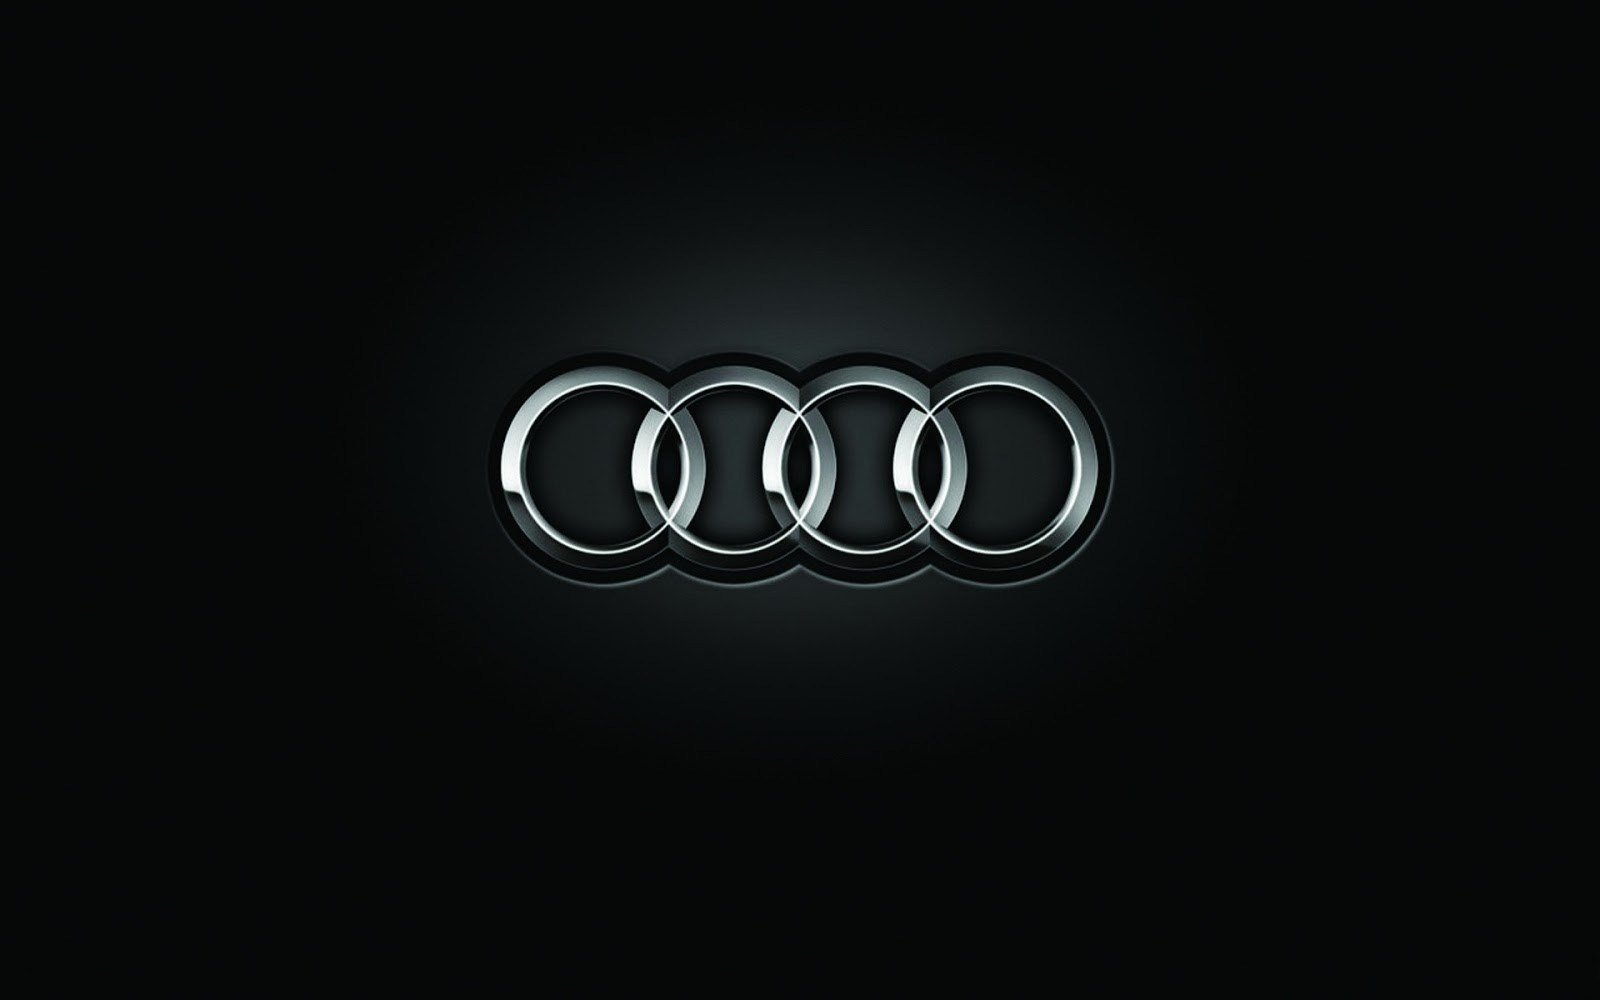 Latest Audi Logo Audi Car Symbol Meaning And History Car Brand Free Download